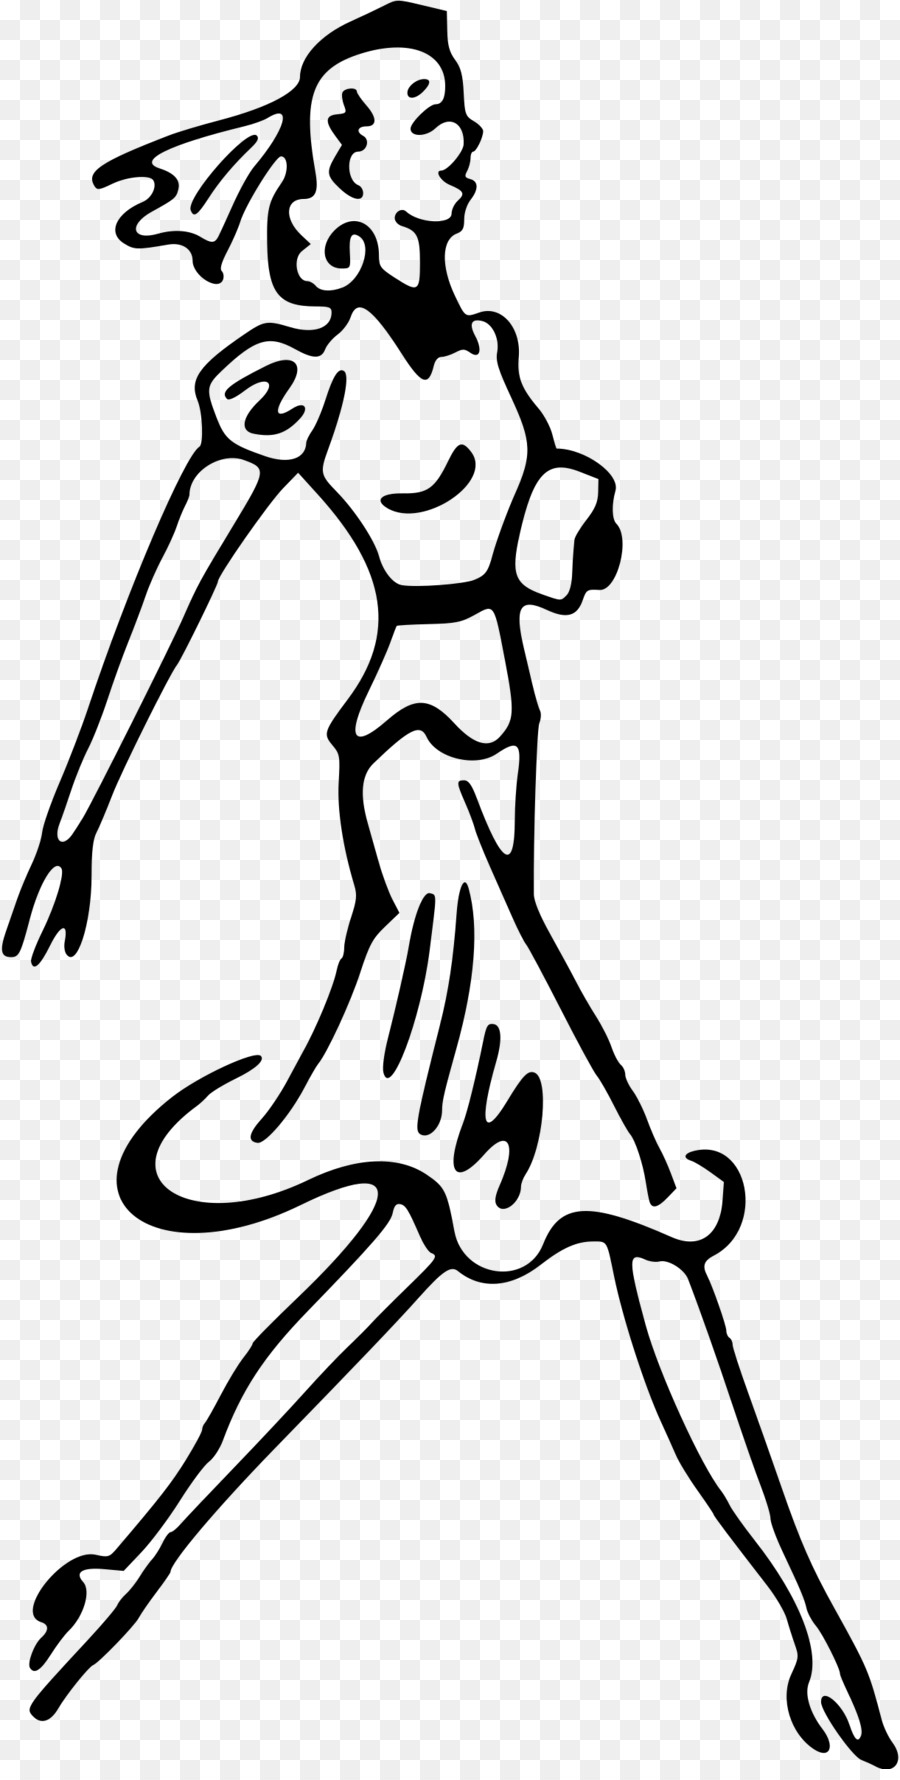 Walk clipart line drawing png royalty free library Black Line Background png download - 1221*2400 - Free ... png royalty free library